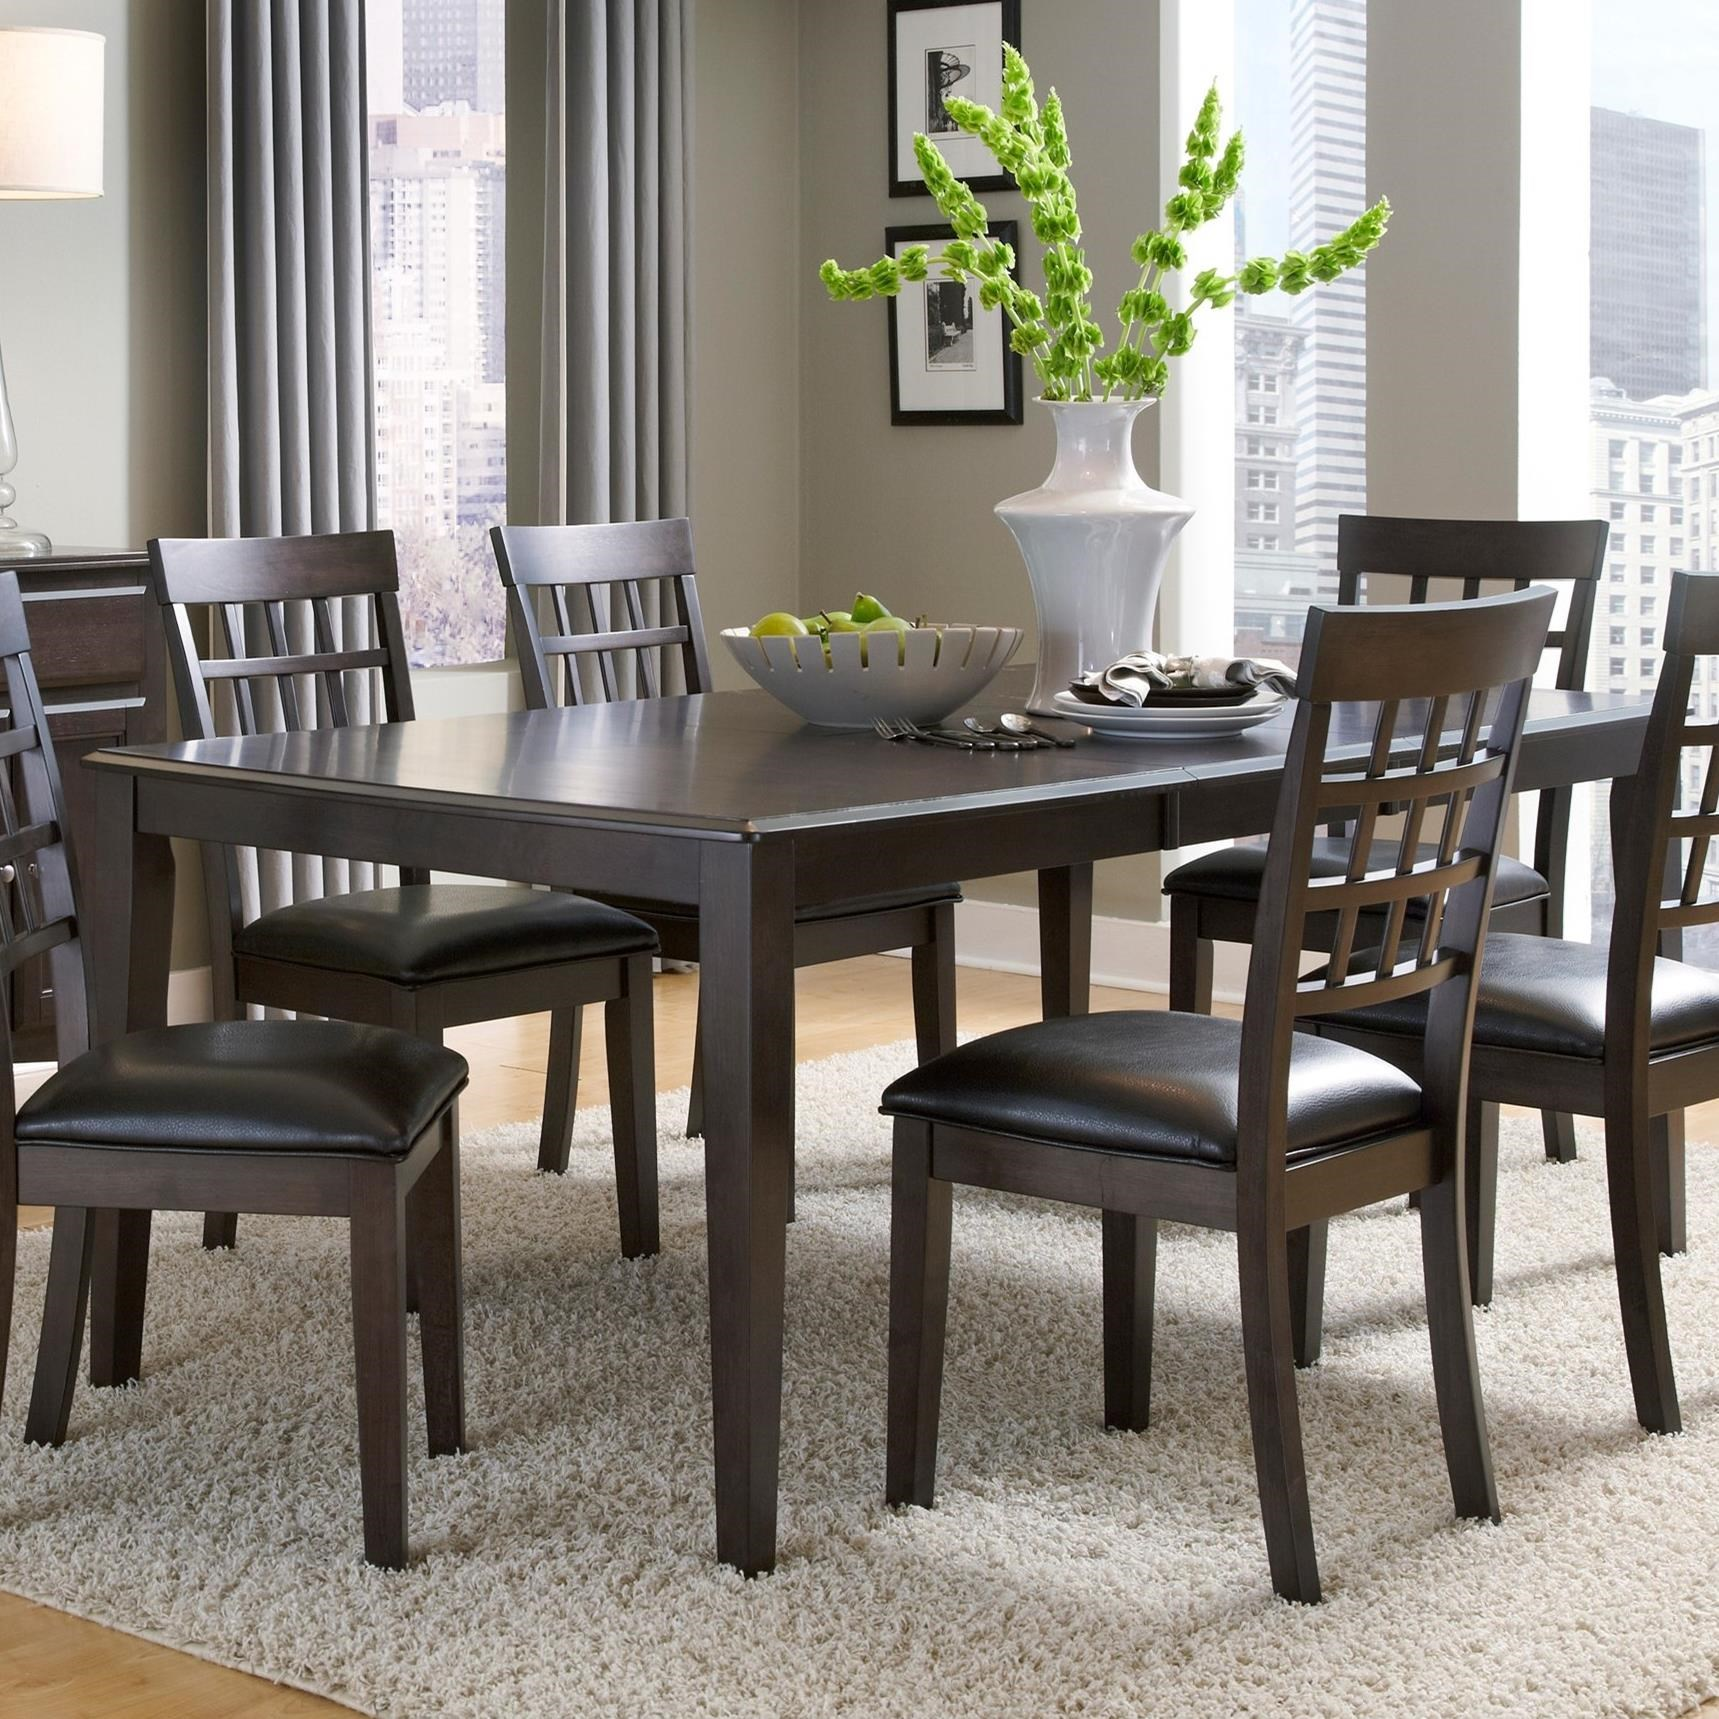 Bristol Point - WG Butterfly Leg Table by A-A at Walker's Furniture